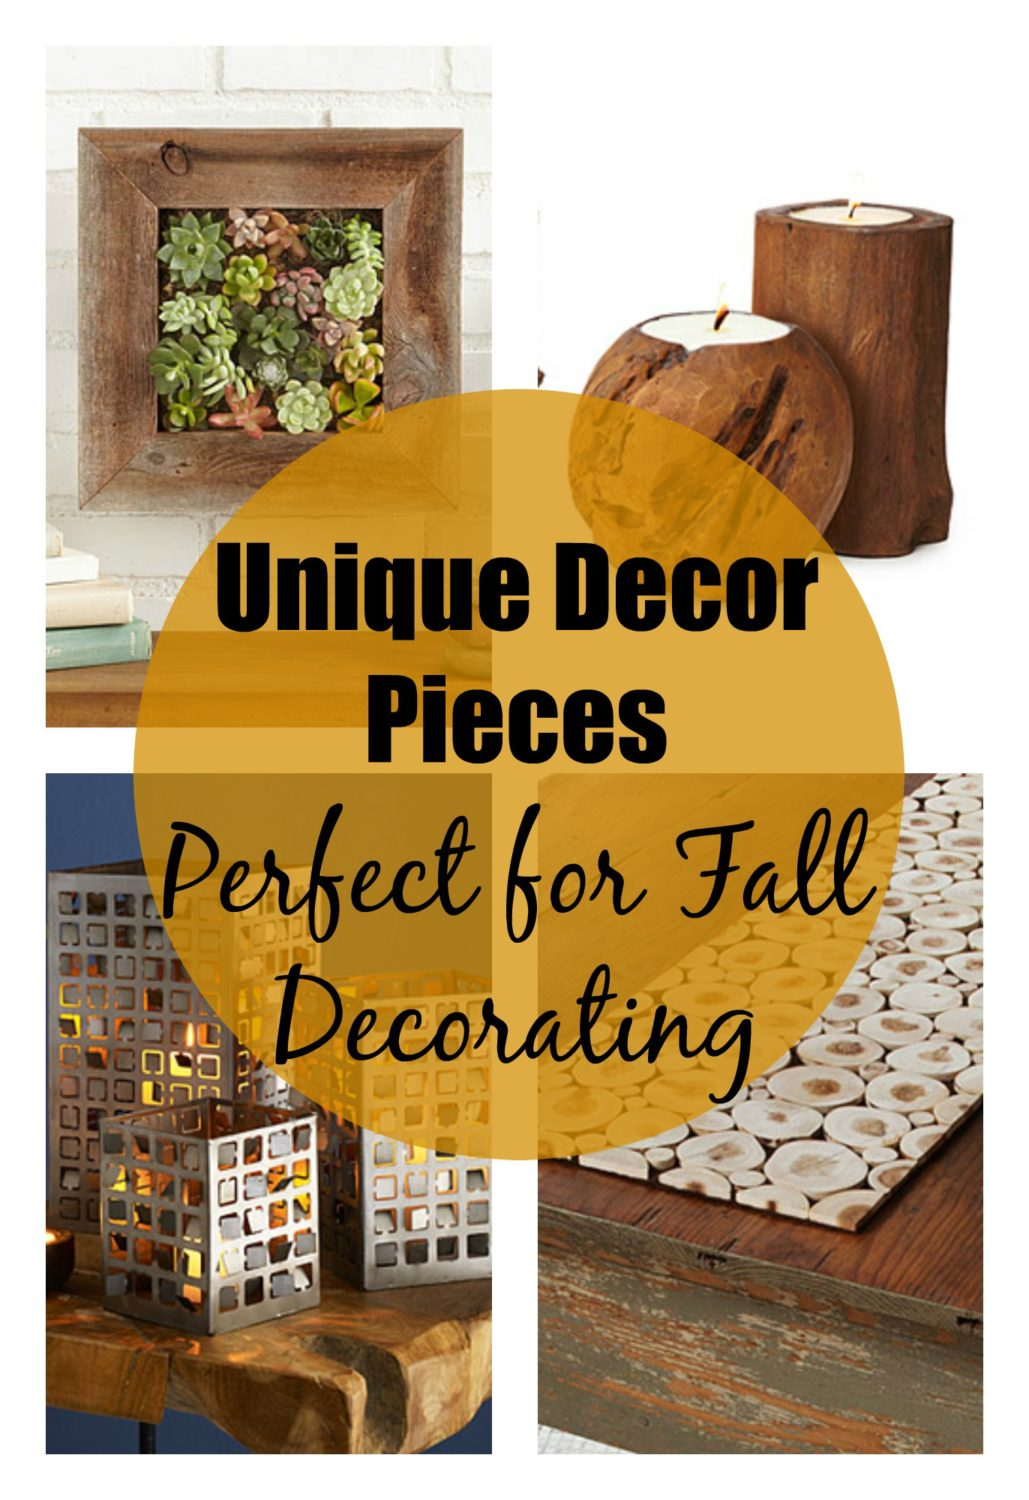 Unique Decor Pieces Perfect for Fall Decorating